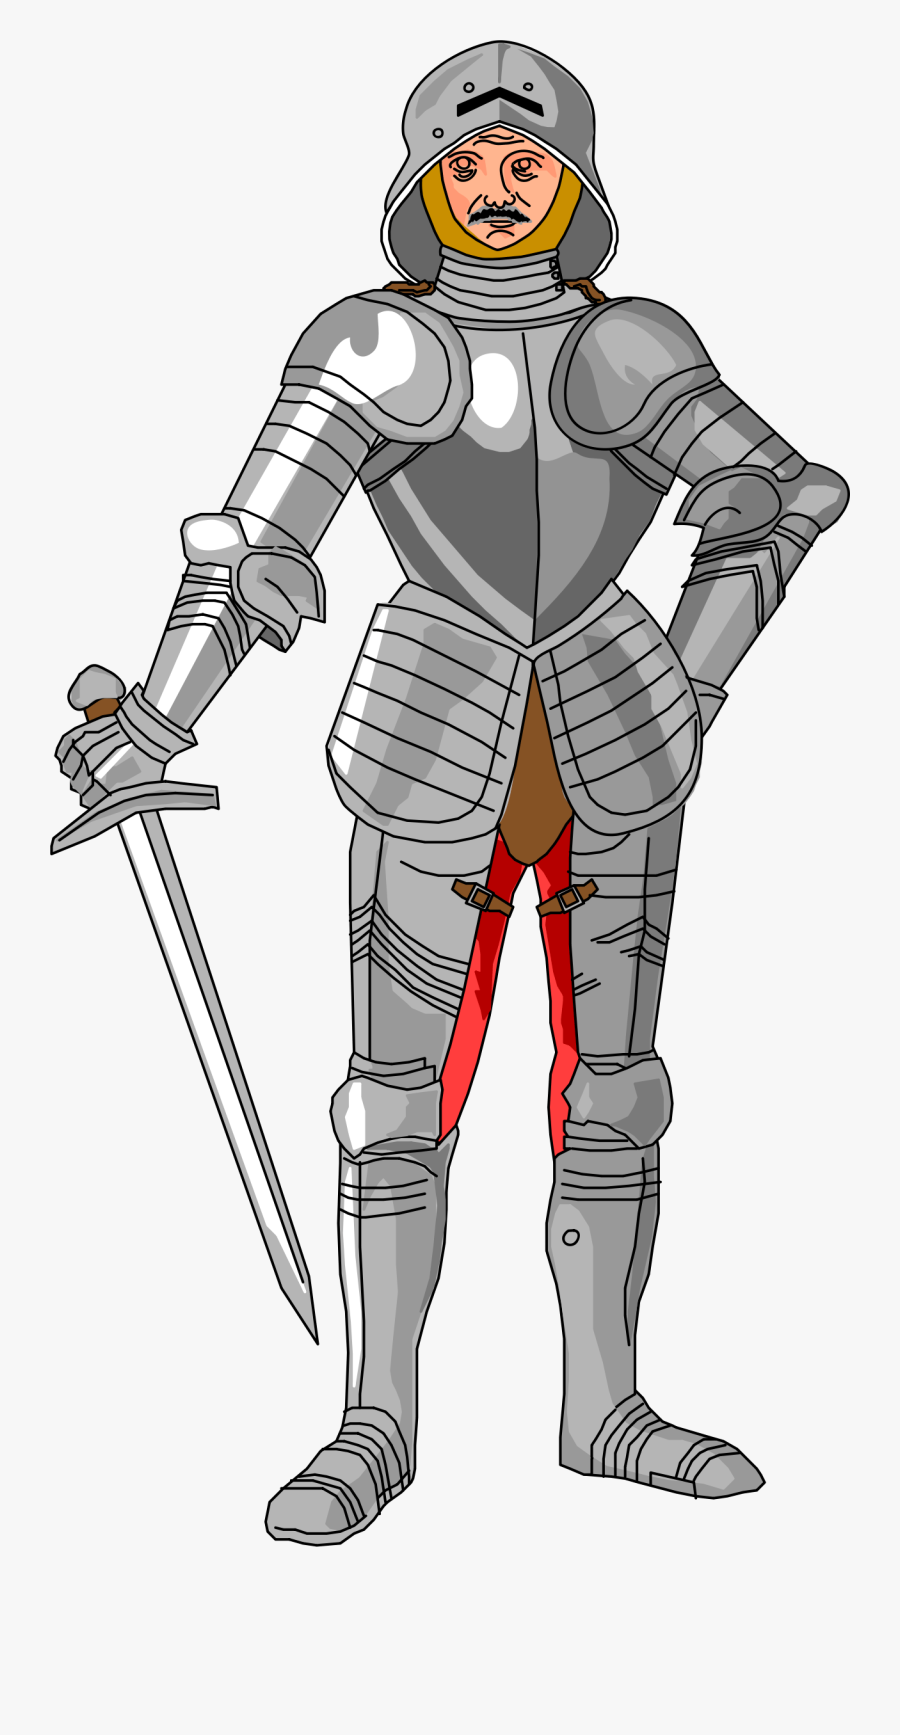 Thumb Image - Knights Middle Ages Clipart, Transparent Clipart